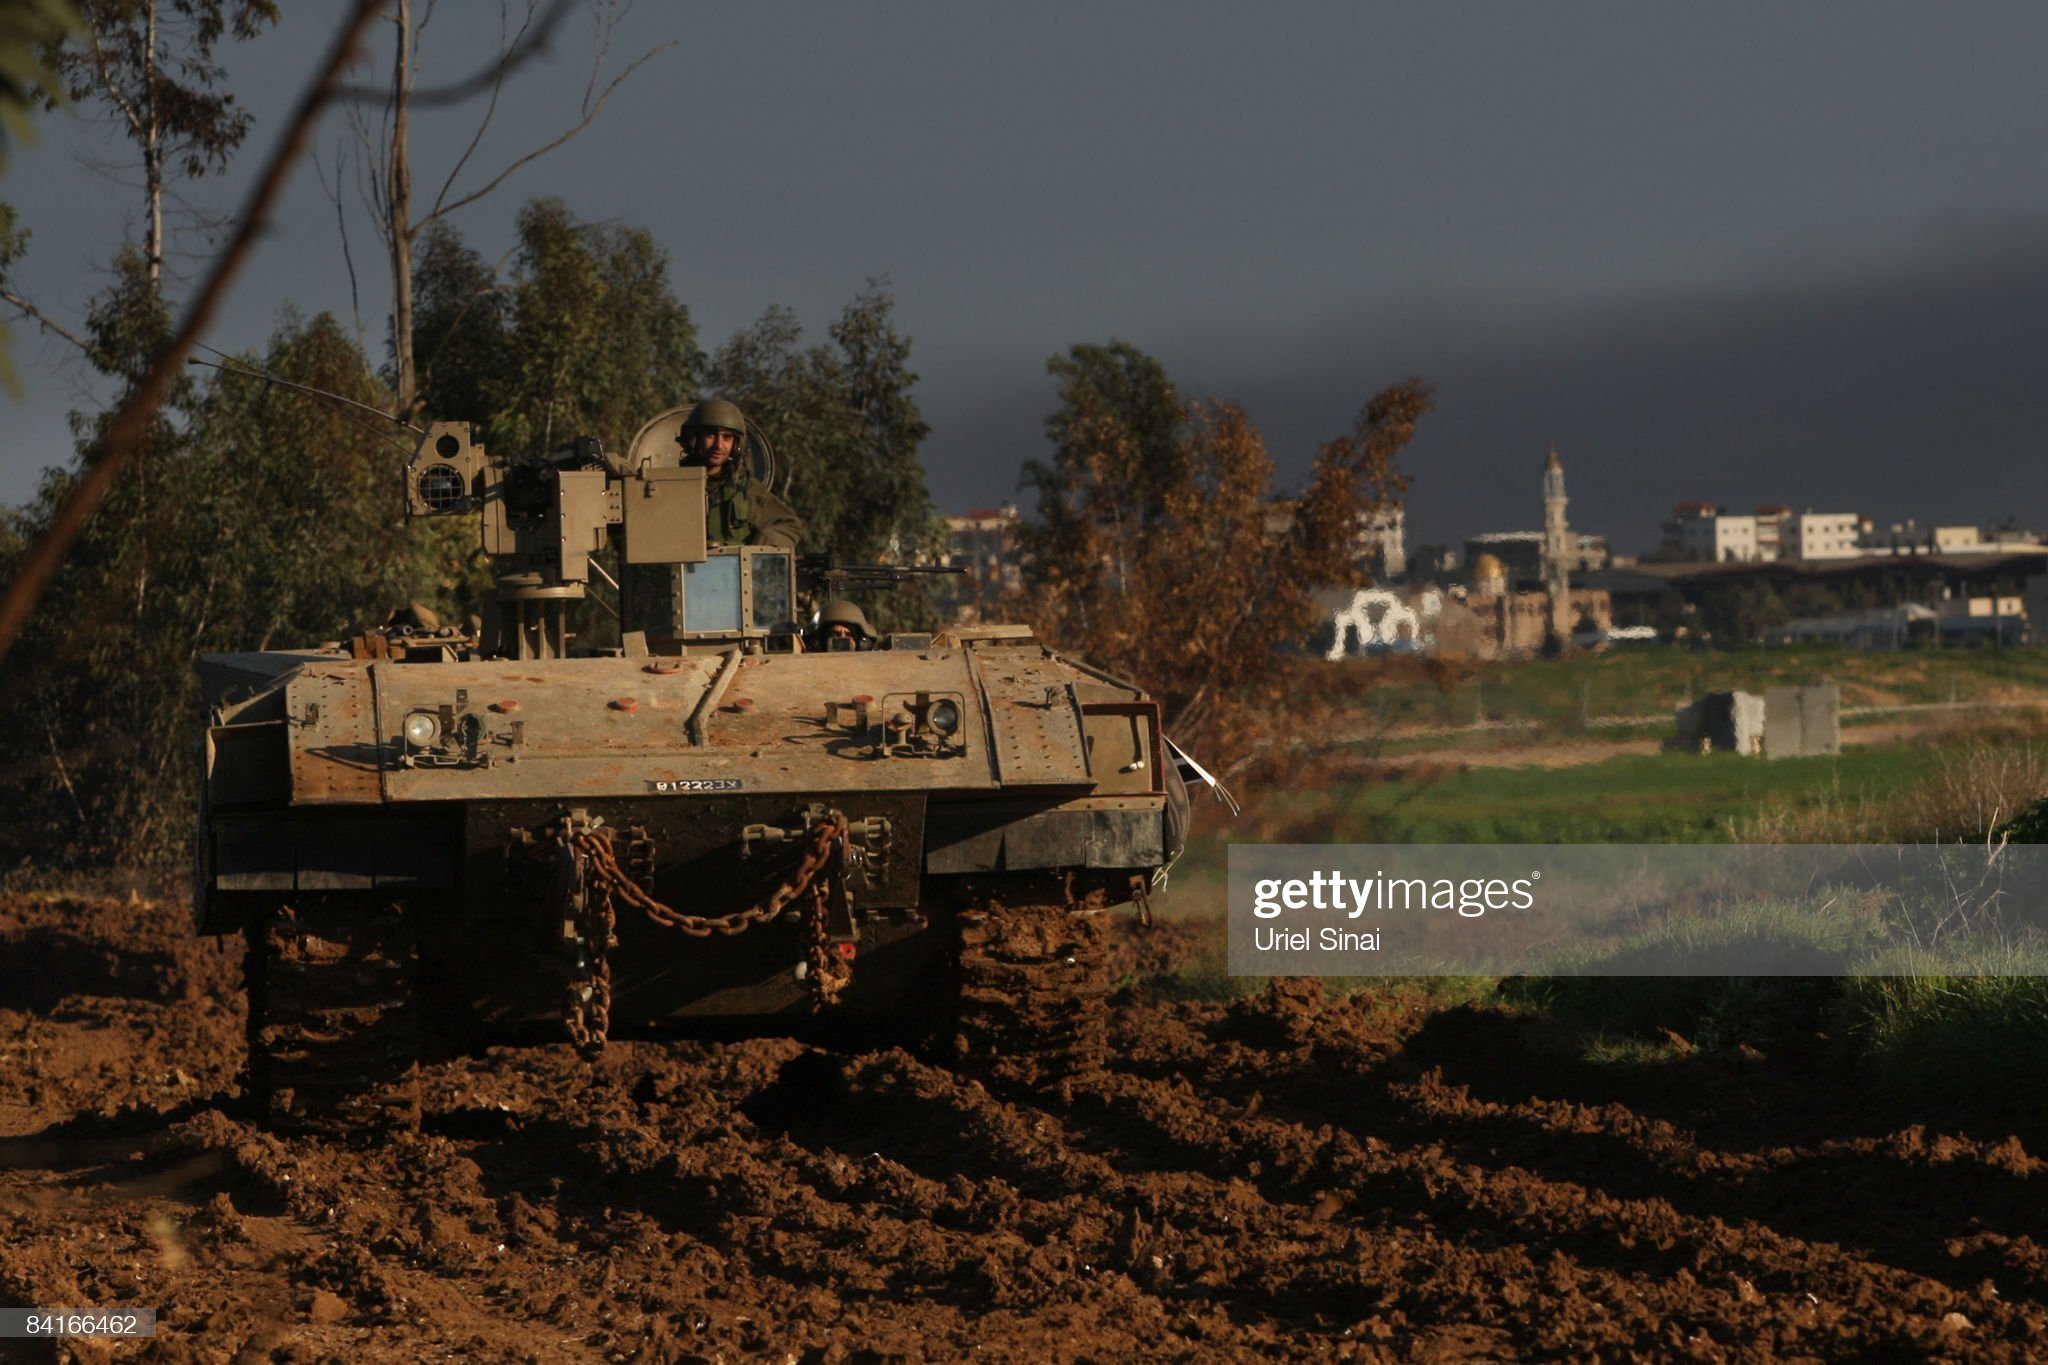 an-israeli-tank-drives-into-gaza-on-january-04-2009-on-the-border-picture-id84166462?s=2048x2048